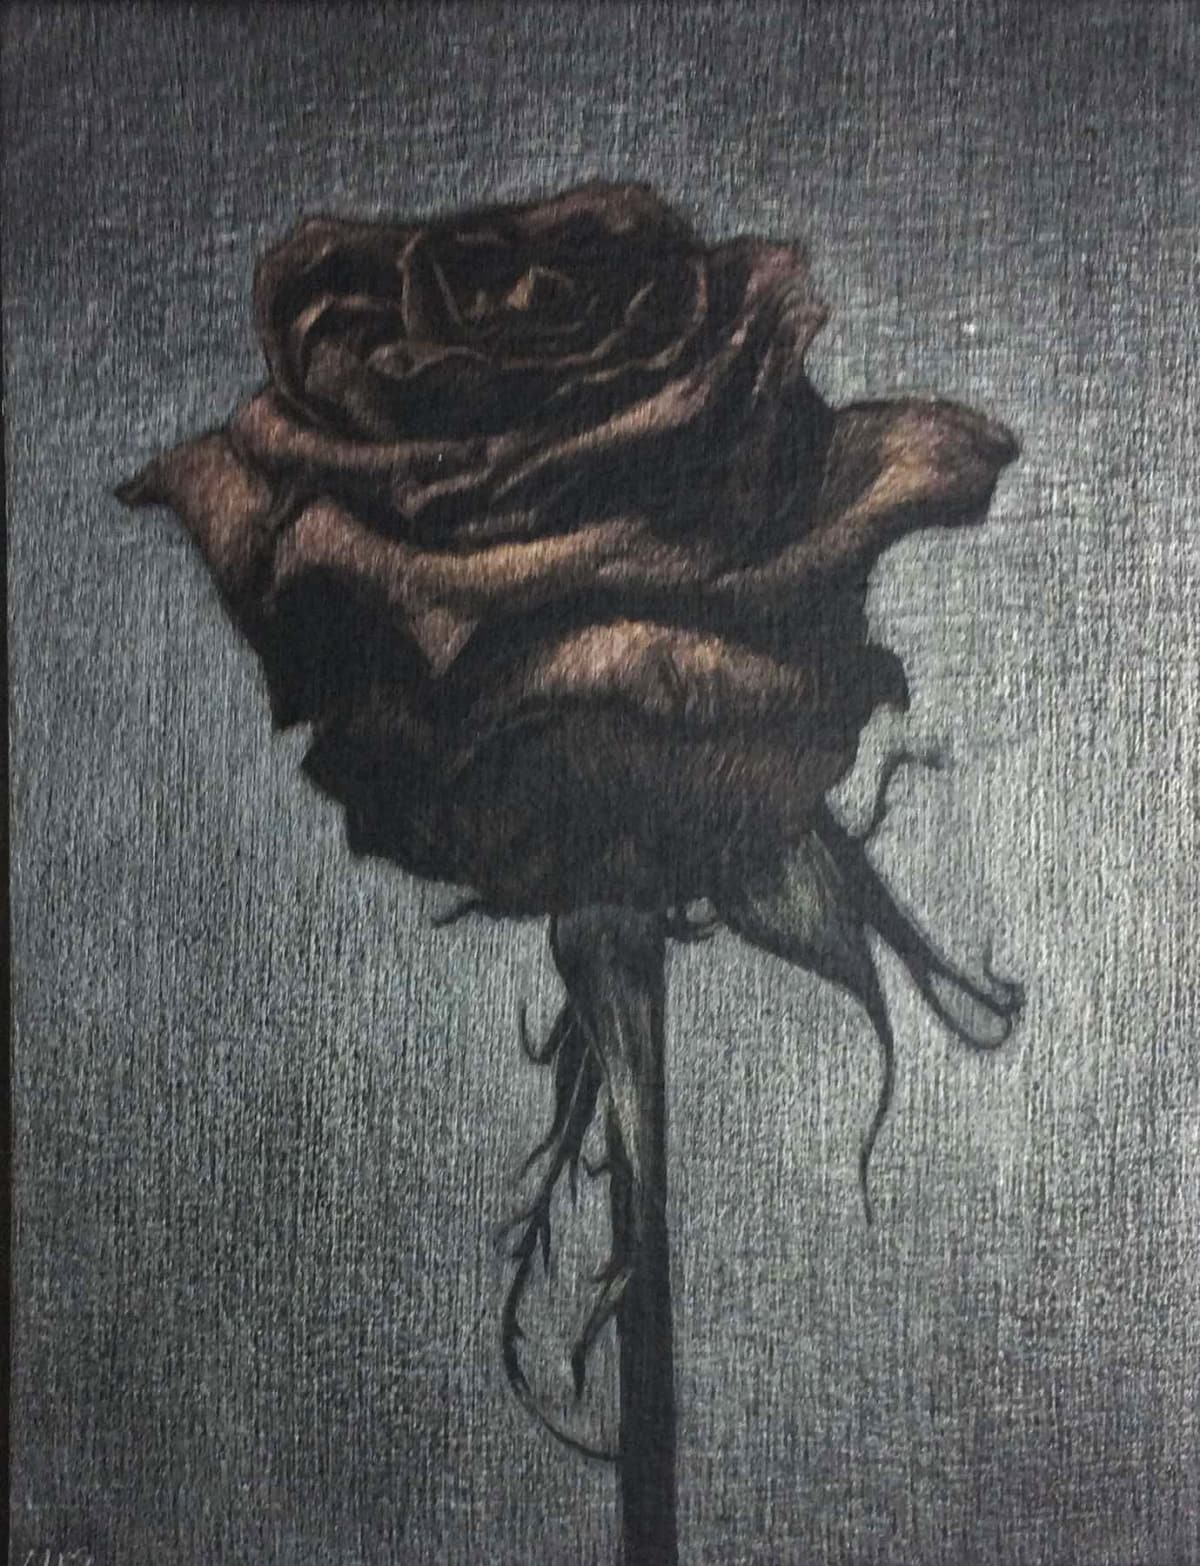 Marjorie Williams-Smith New Rose in Metal, 2017 Aluminumpoint and goldpoint on black acrylic gesso 5 1/8 x 4